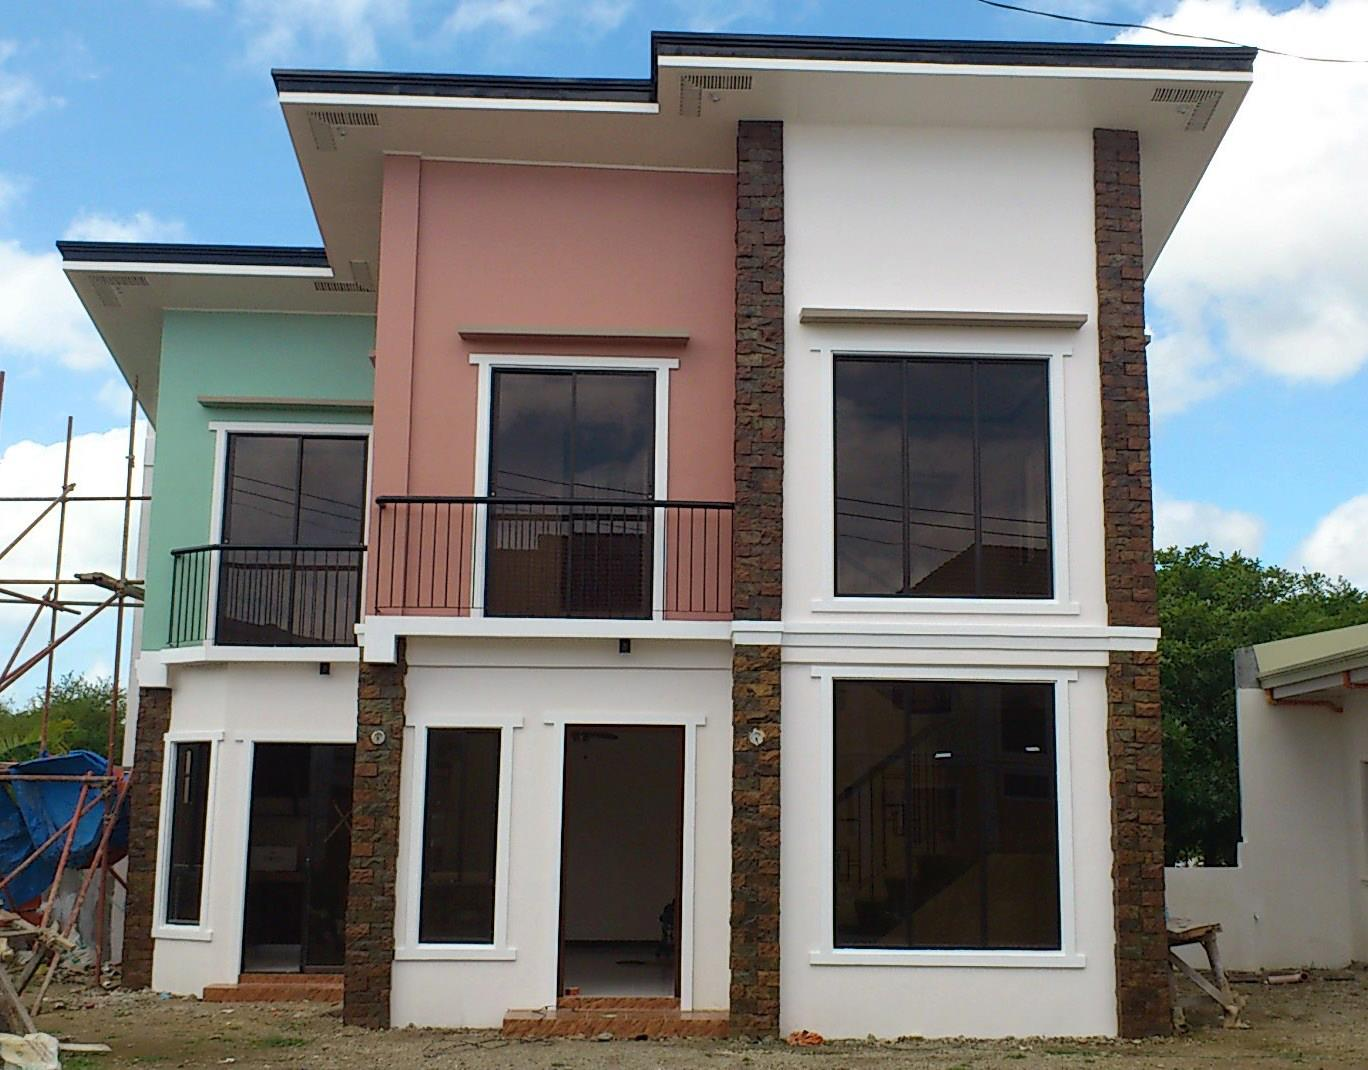 custom home designs of royal residence iloilo by pansol realty and development corporation erecre group realty design and construction - House Models Pictures